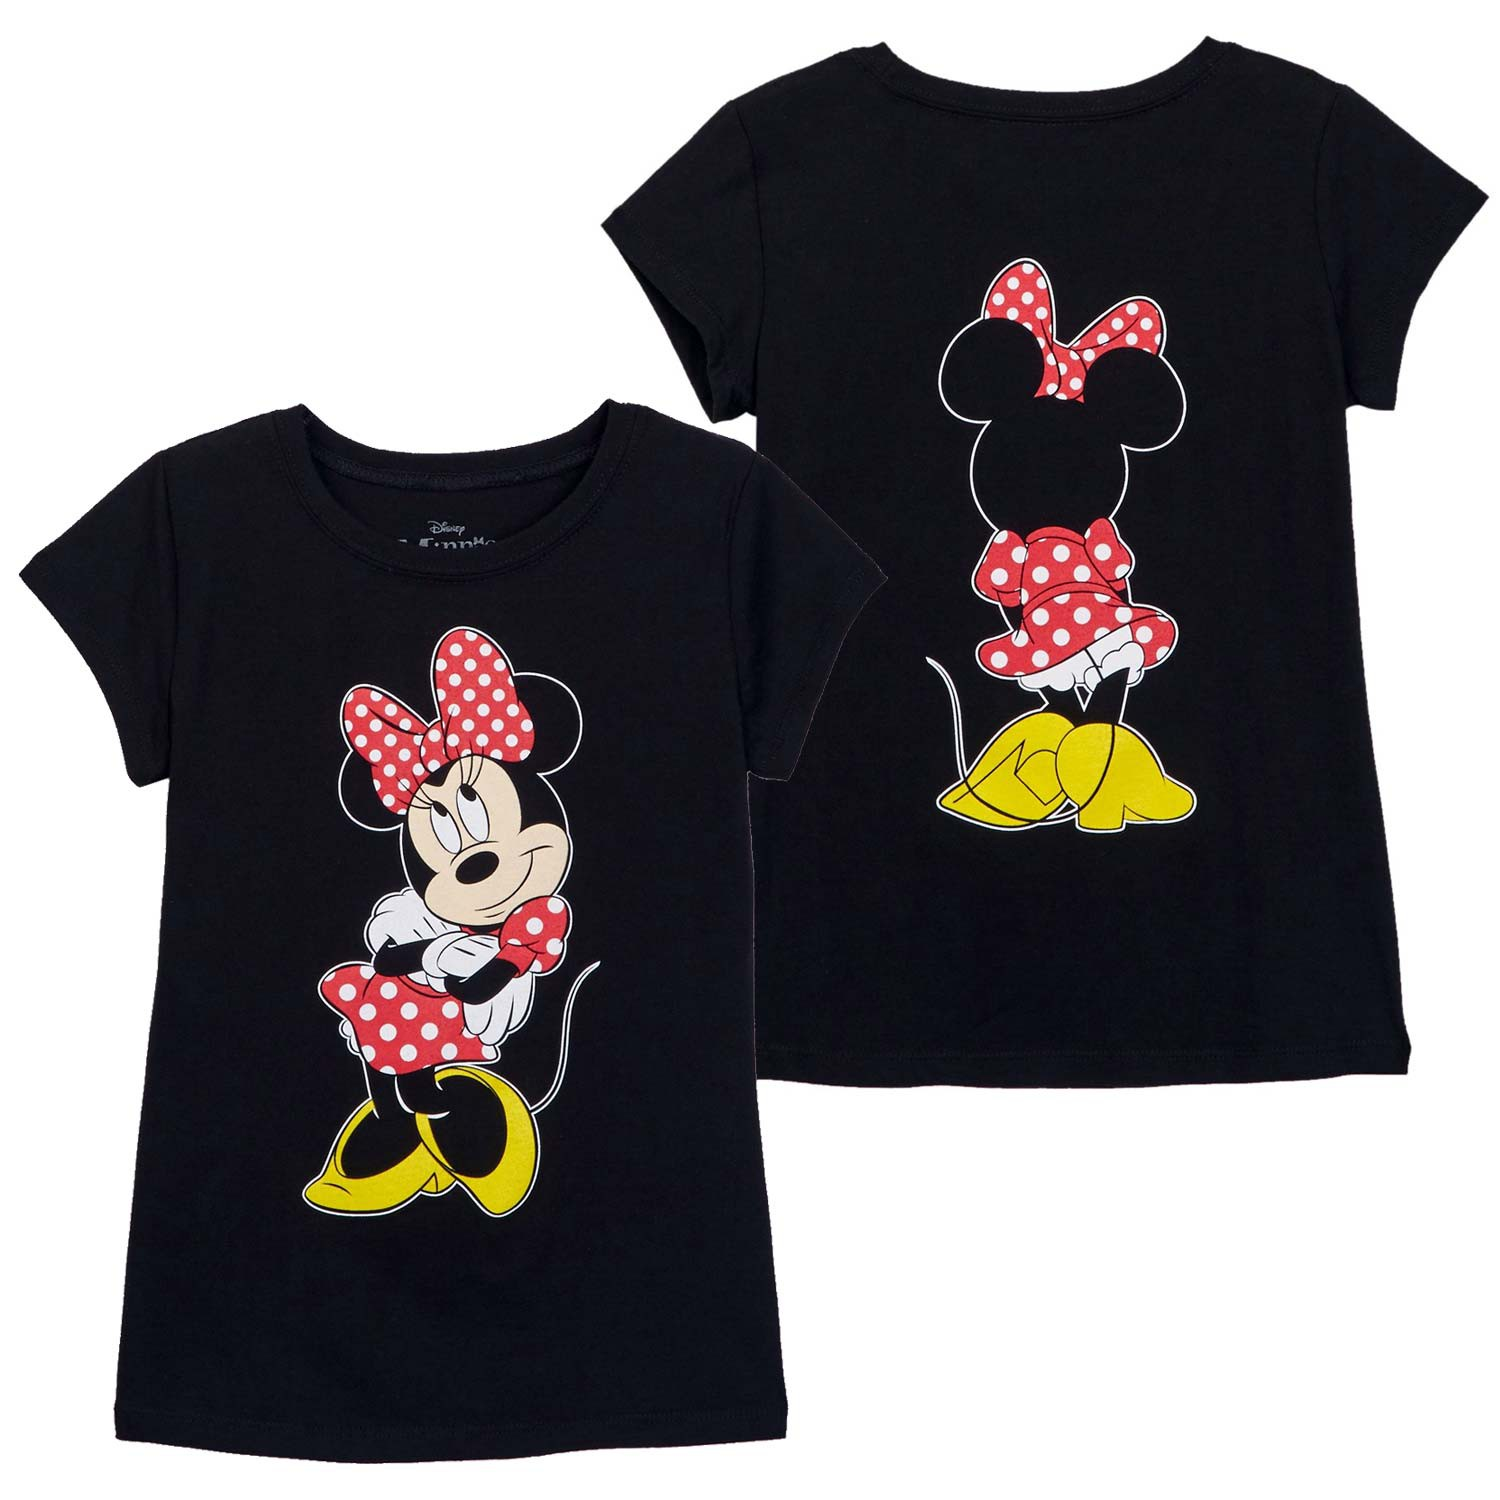 Minnie Mouse Front Back Print Girls Youth Black T-Shirt